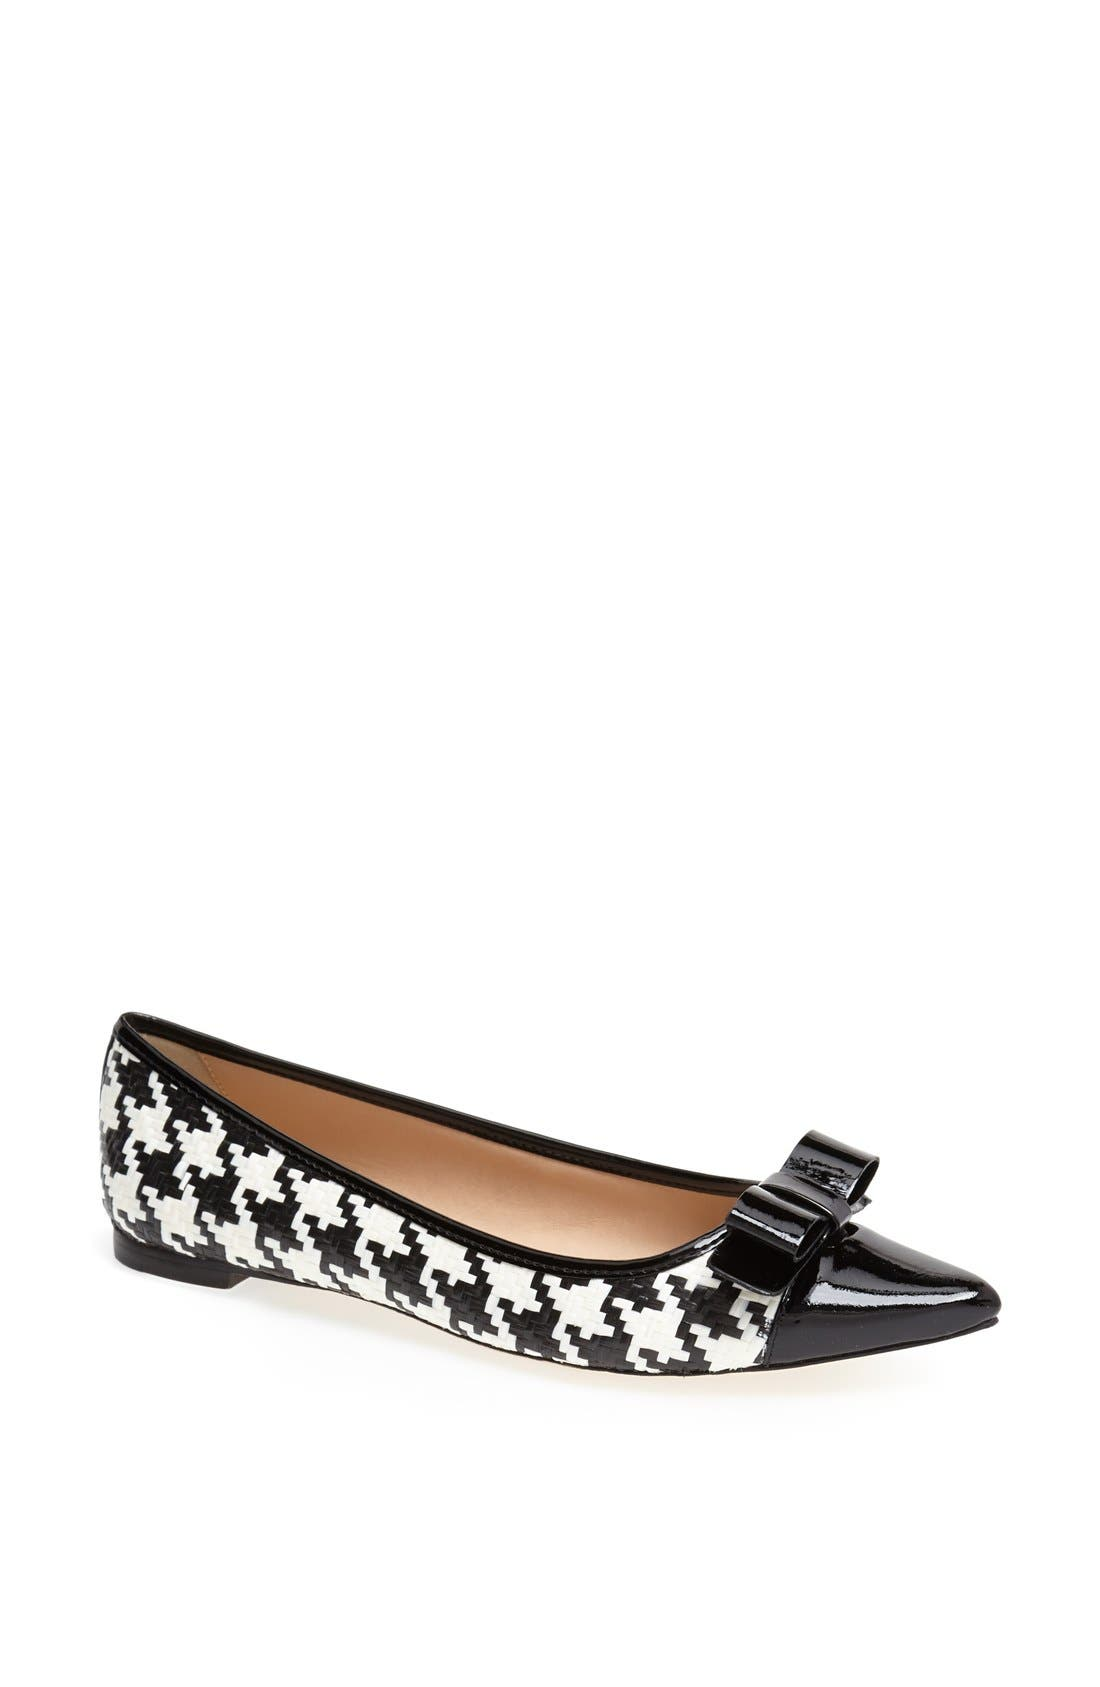 Alternate Image 1 Selected - kate spade new york 'gabe too' pointy toe flat